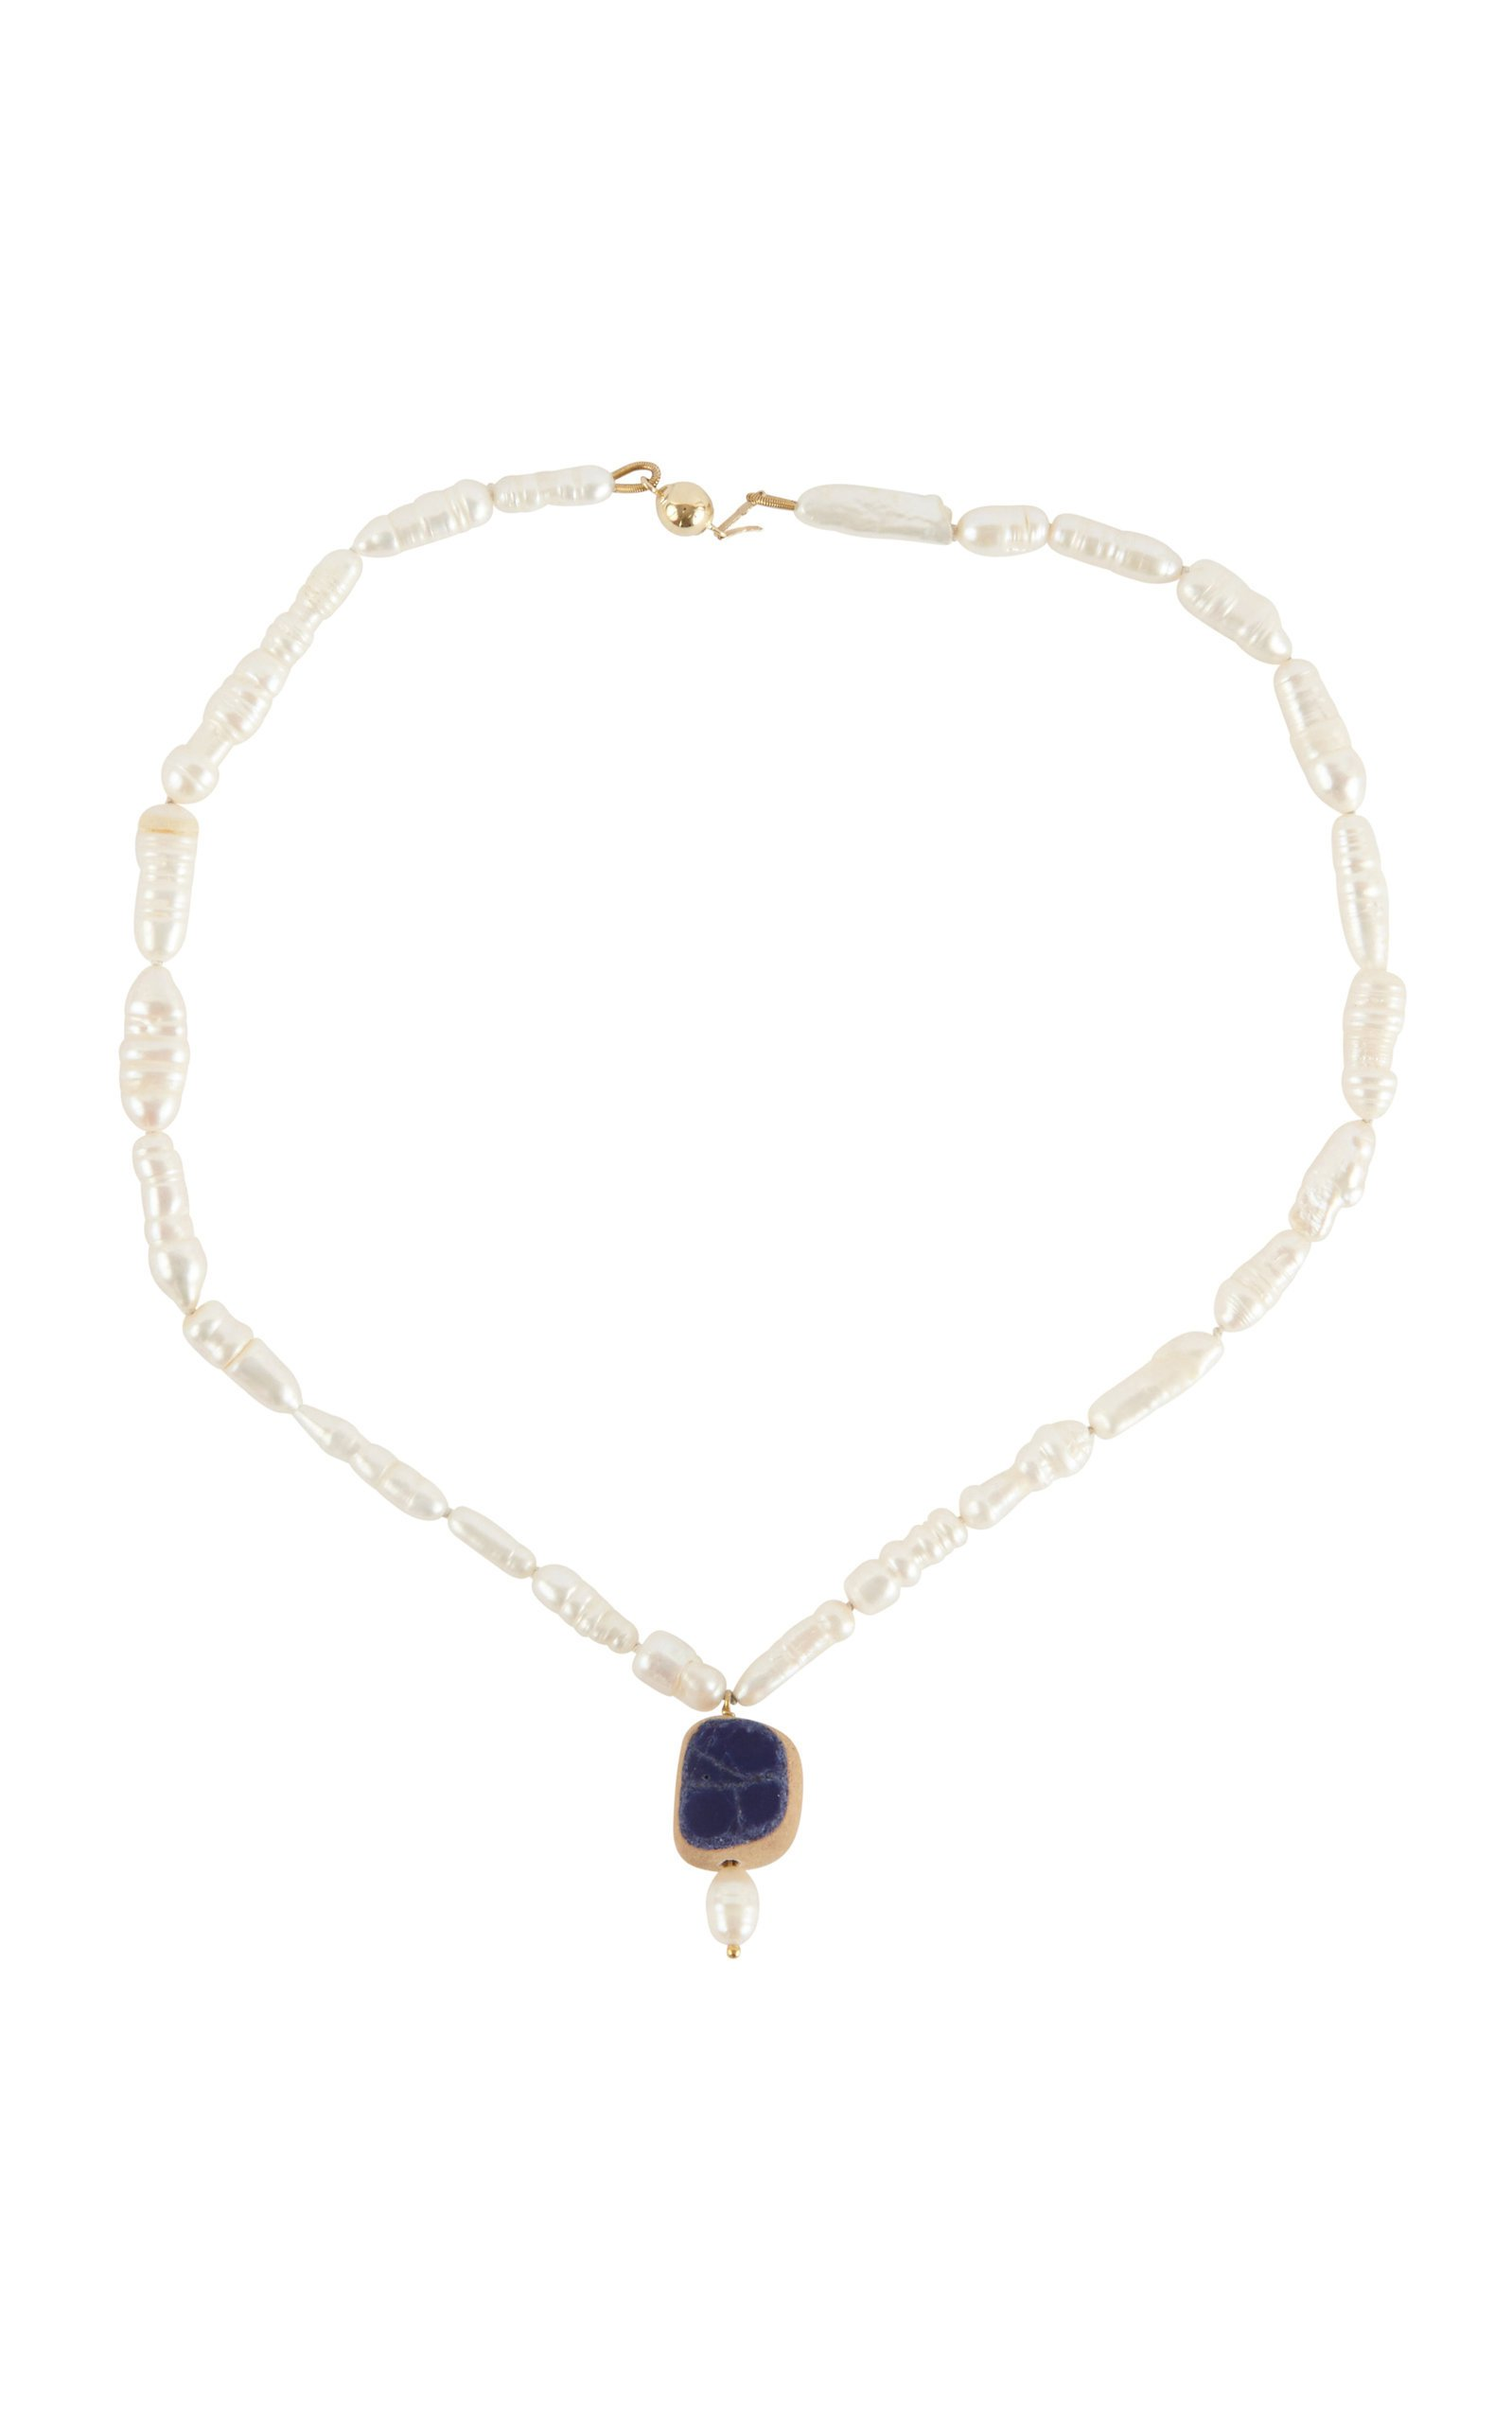 Holly Ryan Sorrento Pearl Necklet with Terracotta Detail